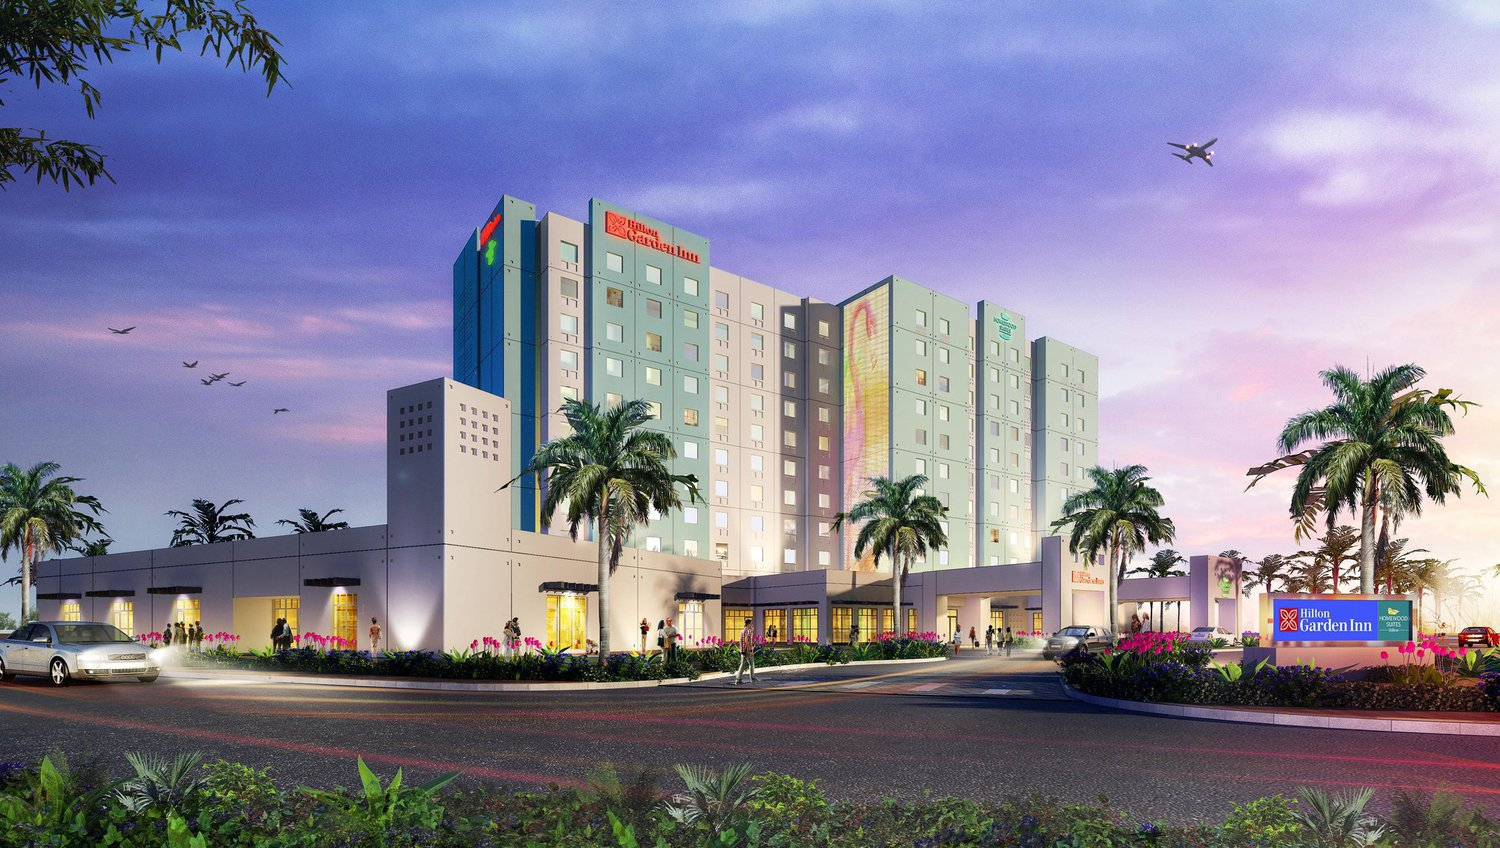 Hotels Near Dolphin Mall And Miami International Mall